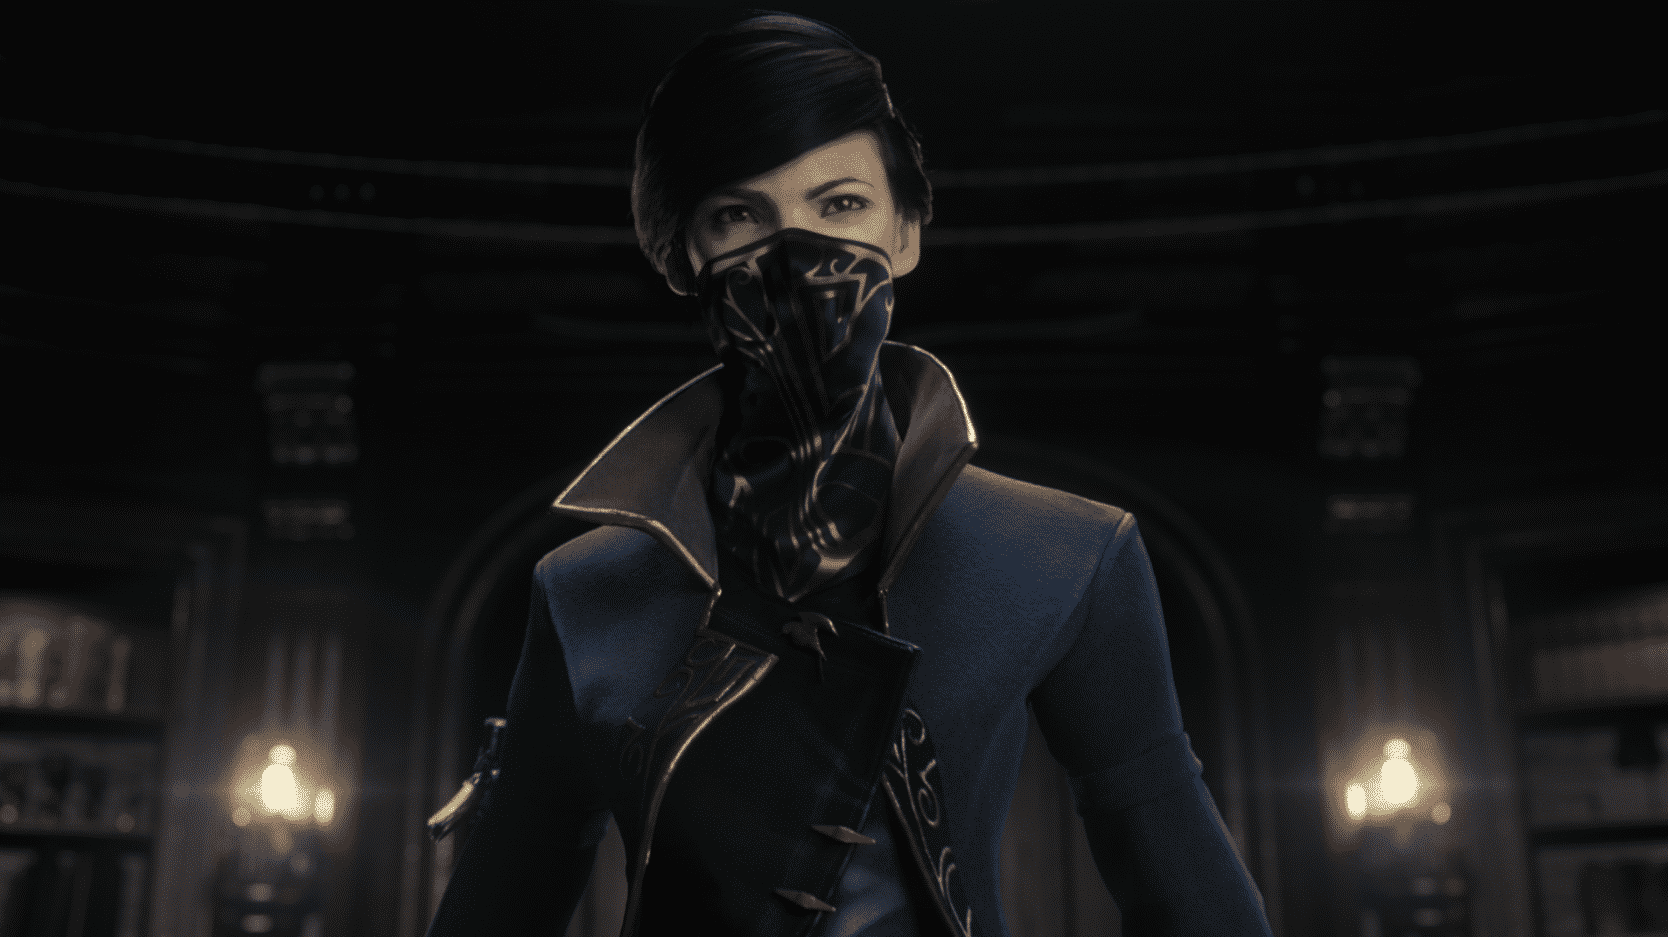 E3: Arkane Studios kündigen Dishonored 2 an